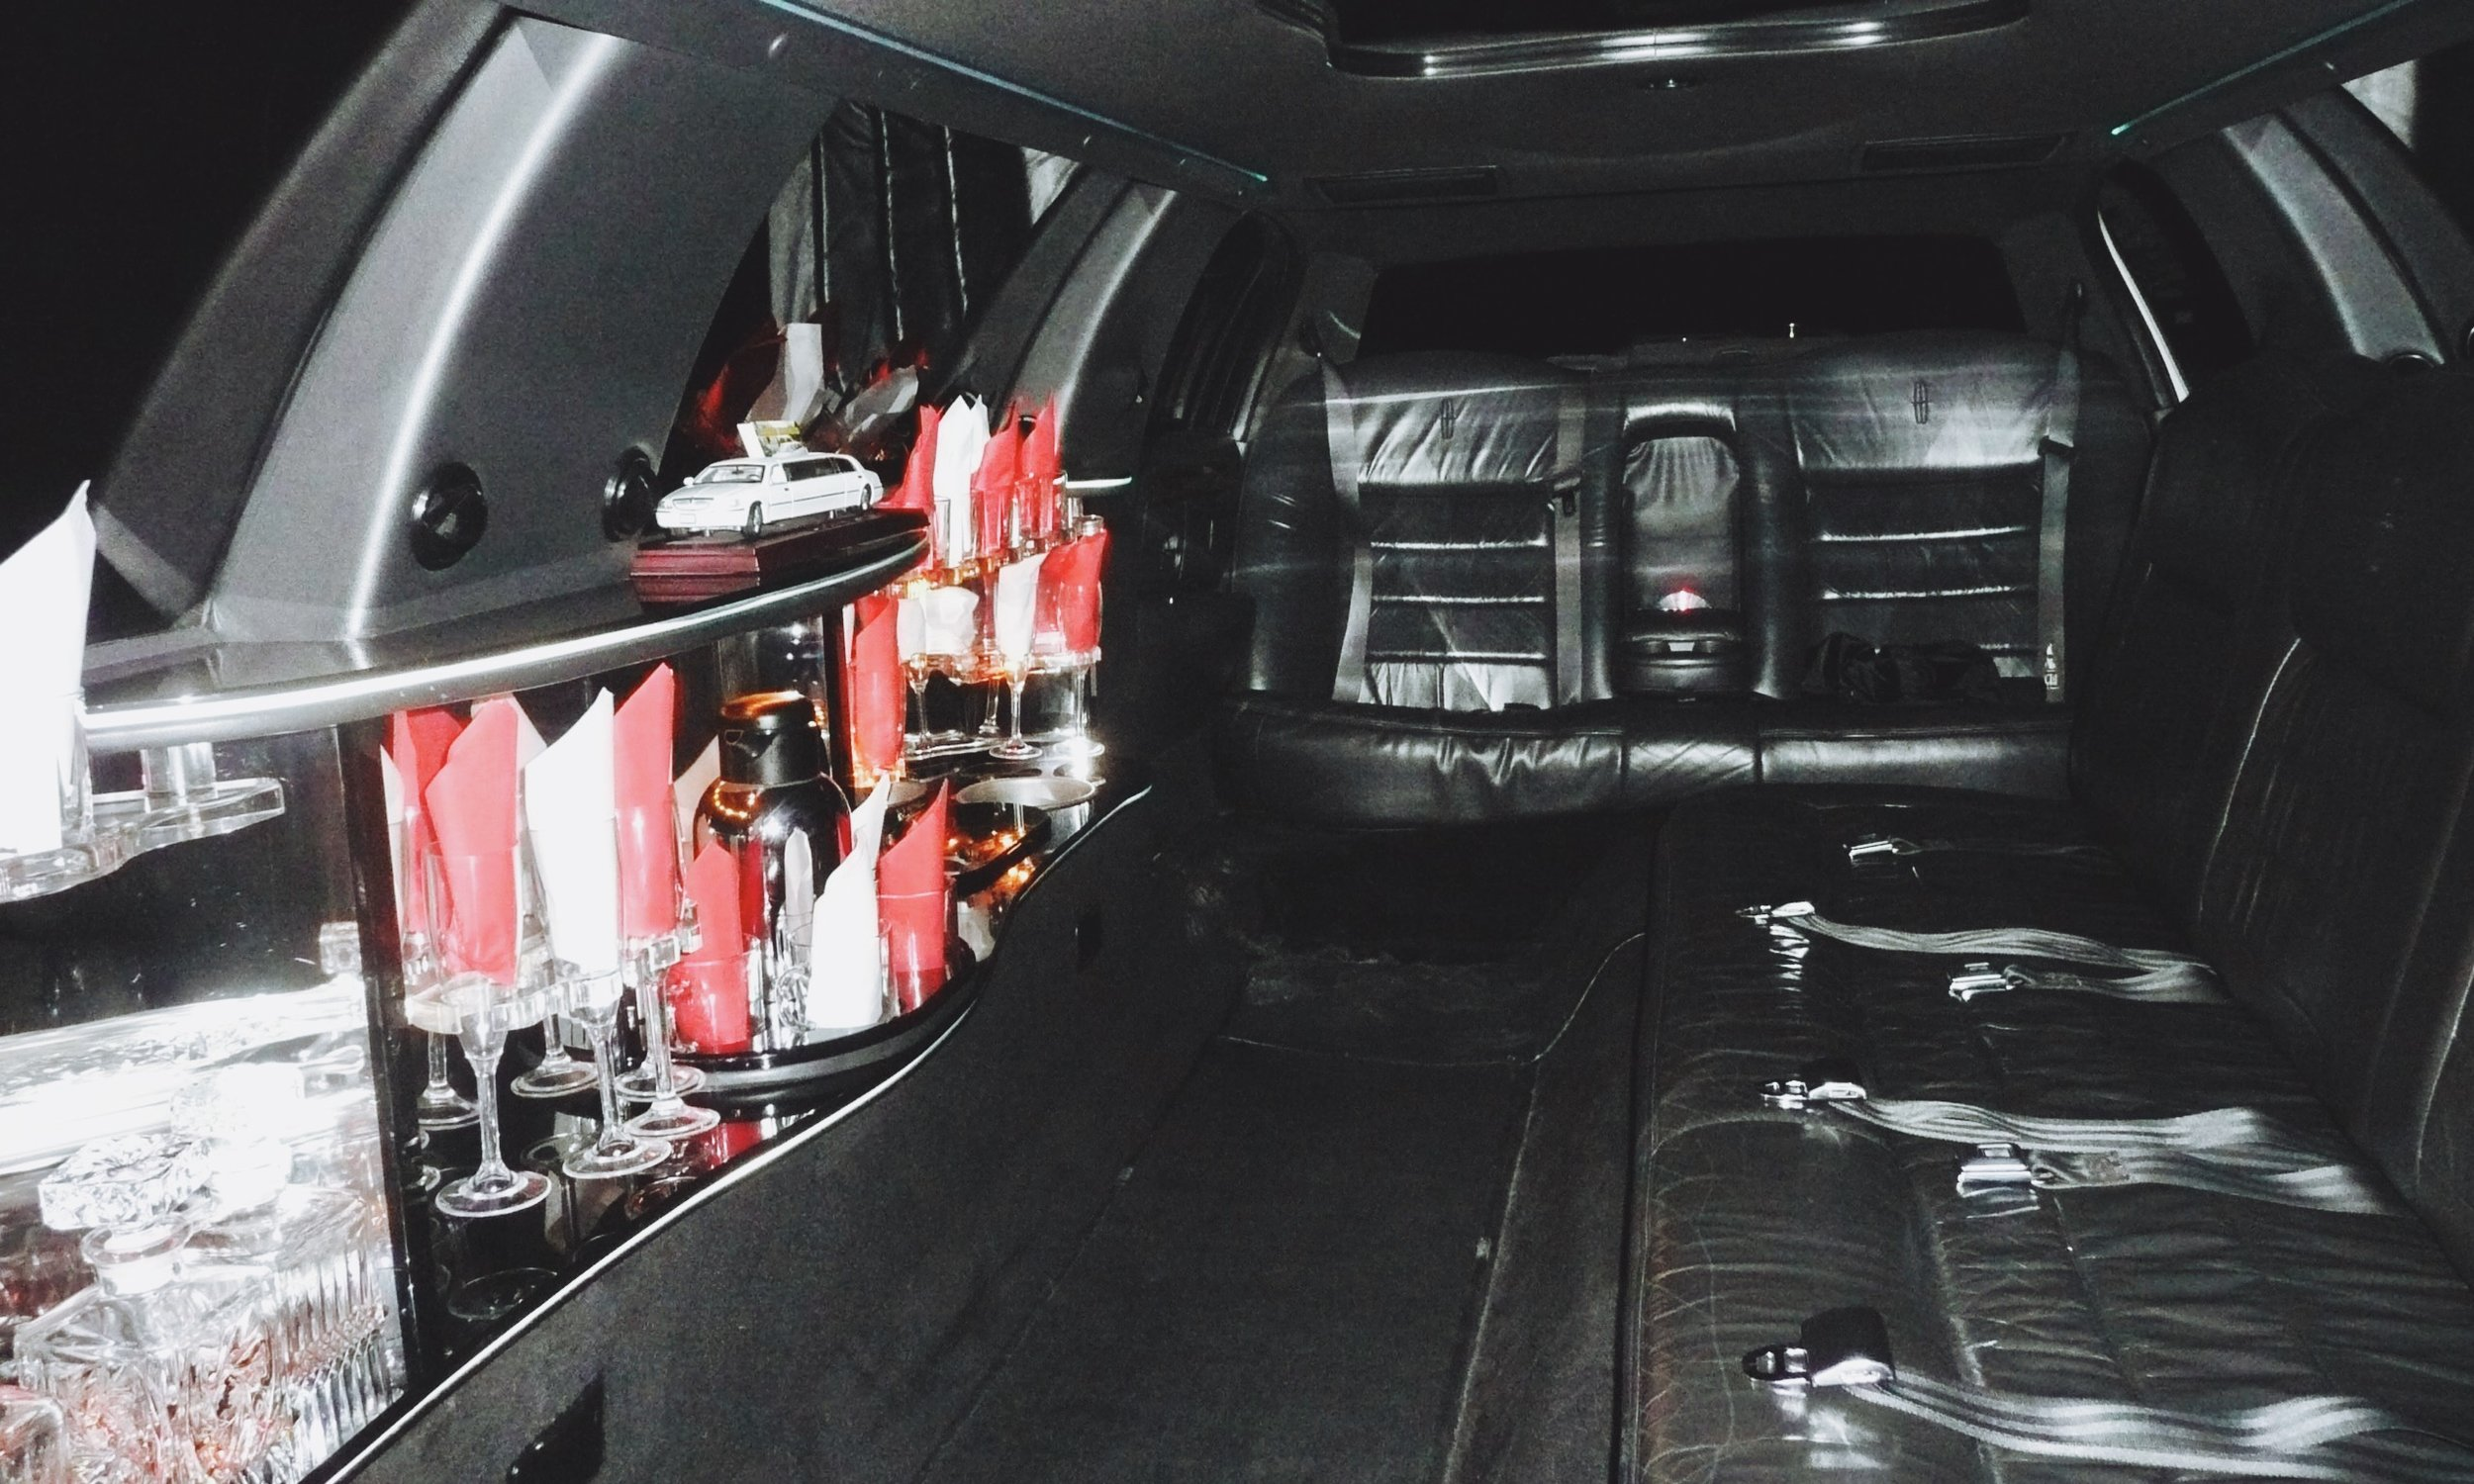 The luxury leather interior of our Lincoln limousine can seat up to 8 passengers